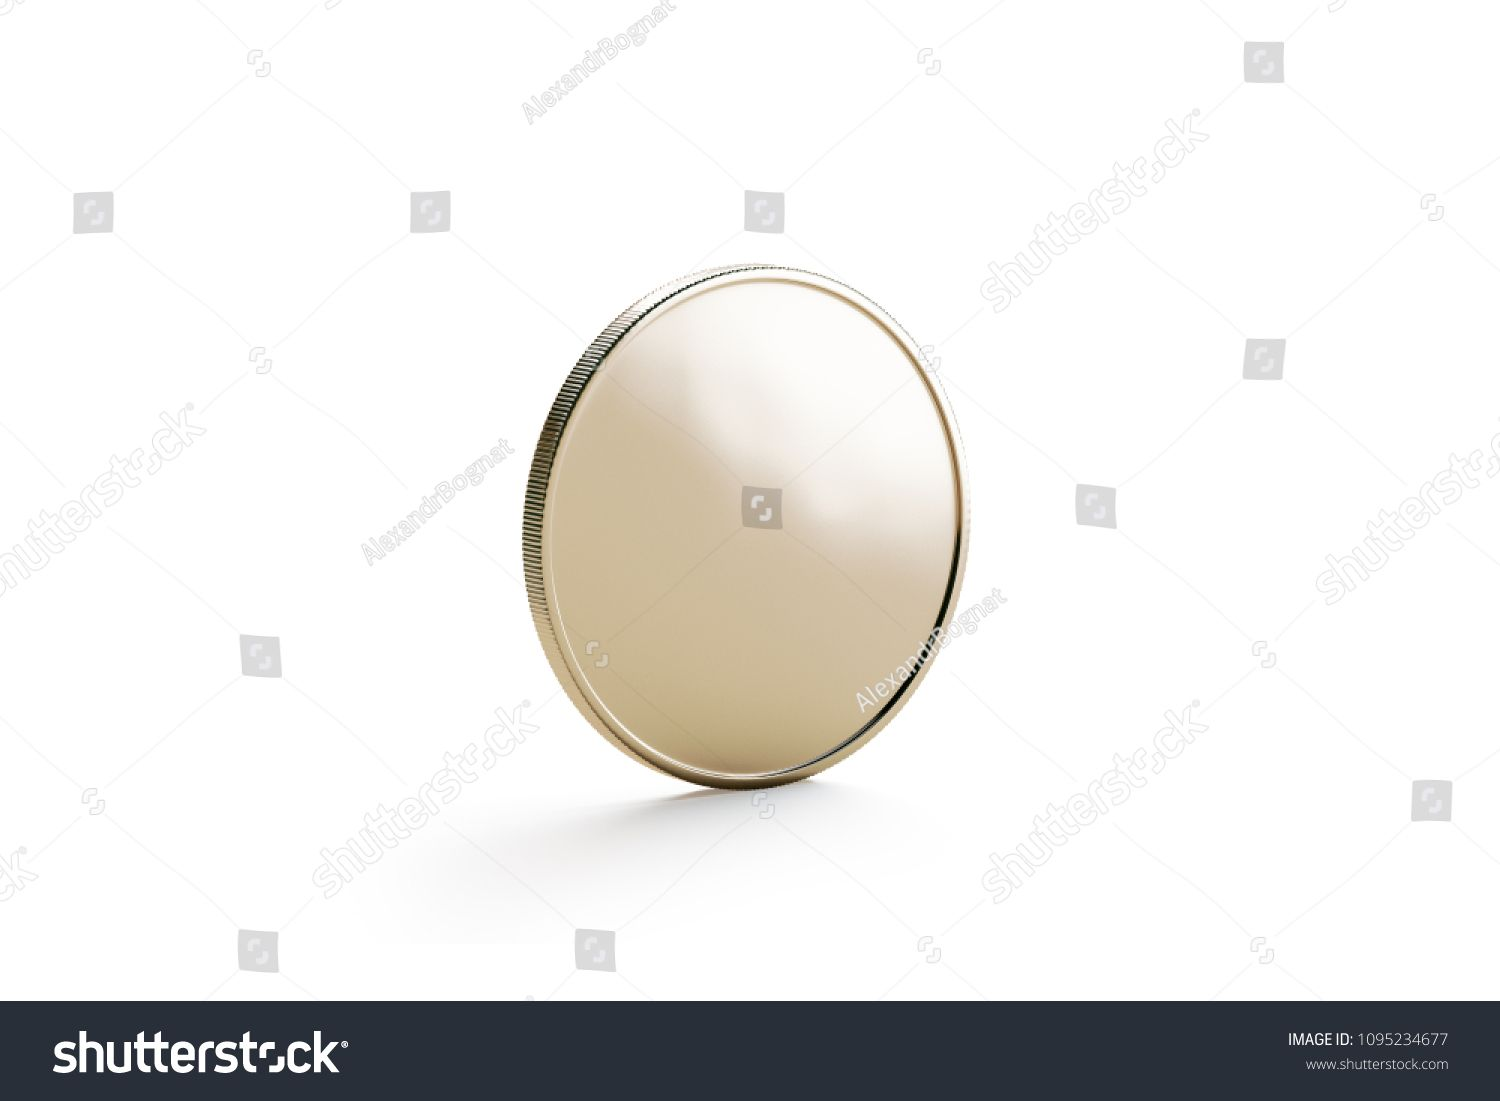 Blank Gold Coin Mock Up Isolated Side View 3d Rendering Empty Golden Iece Of Money Mockup Stand Clear Gold Coins Photography Tutorials Stock Illustration